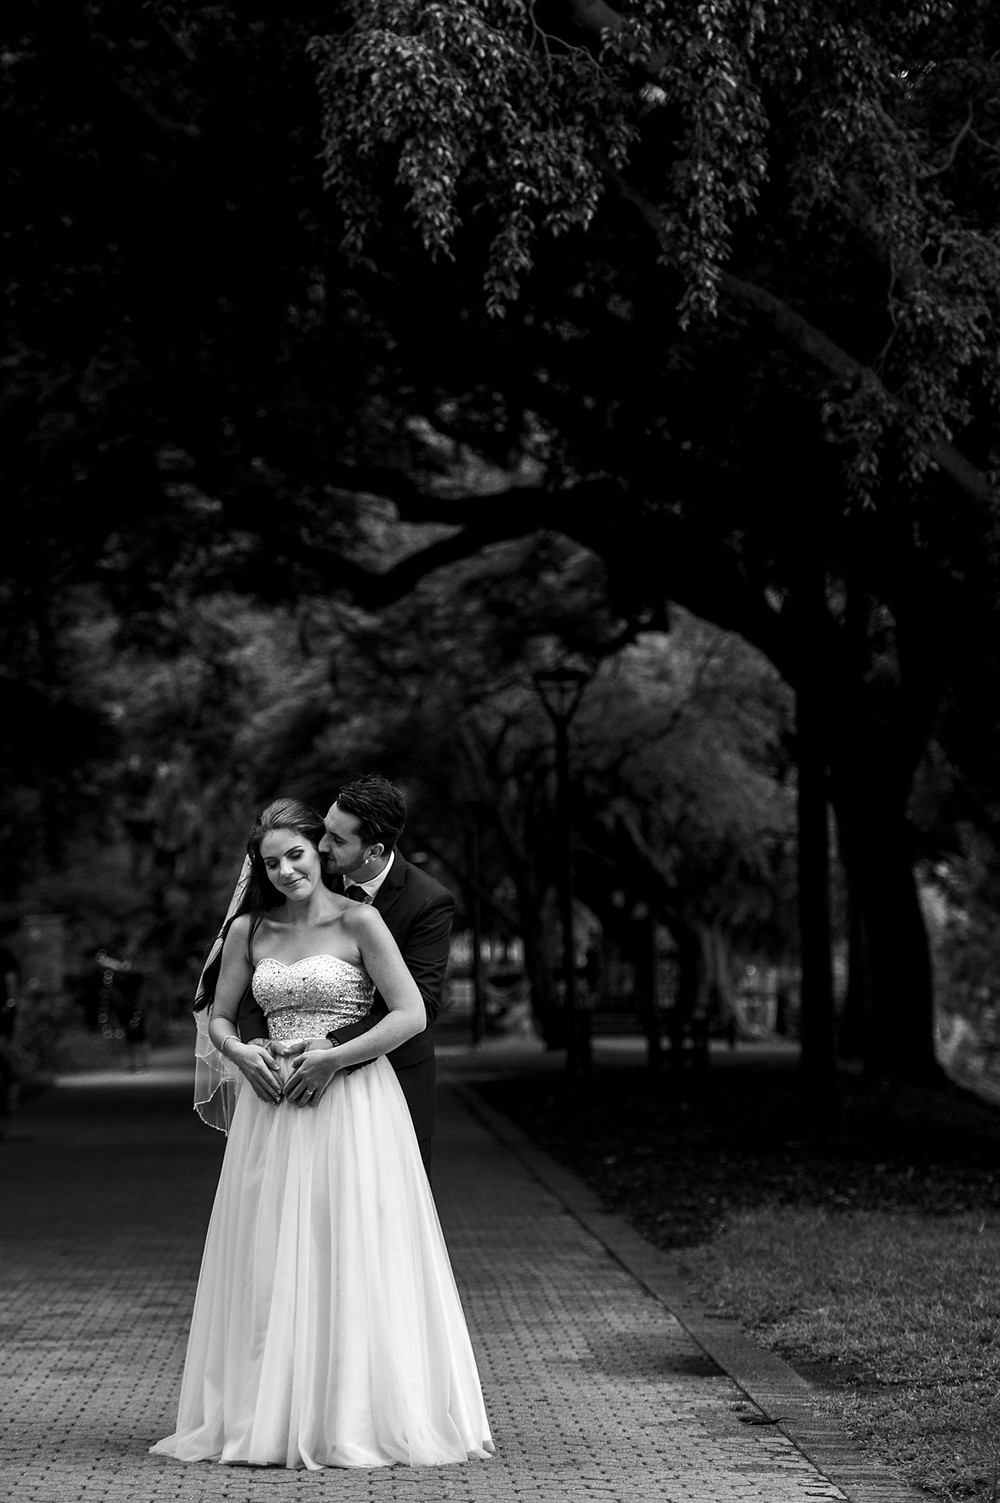 Jay Brosnan Photography | Brisbane Wedding | Brisbane Wedding Photographer | Sunshine Coast Wedding | Sunshine Coast Wedding Photographer | Botanical Gardens | Jay Brosnan | JBP